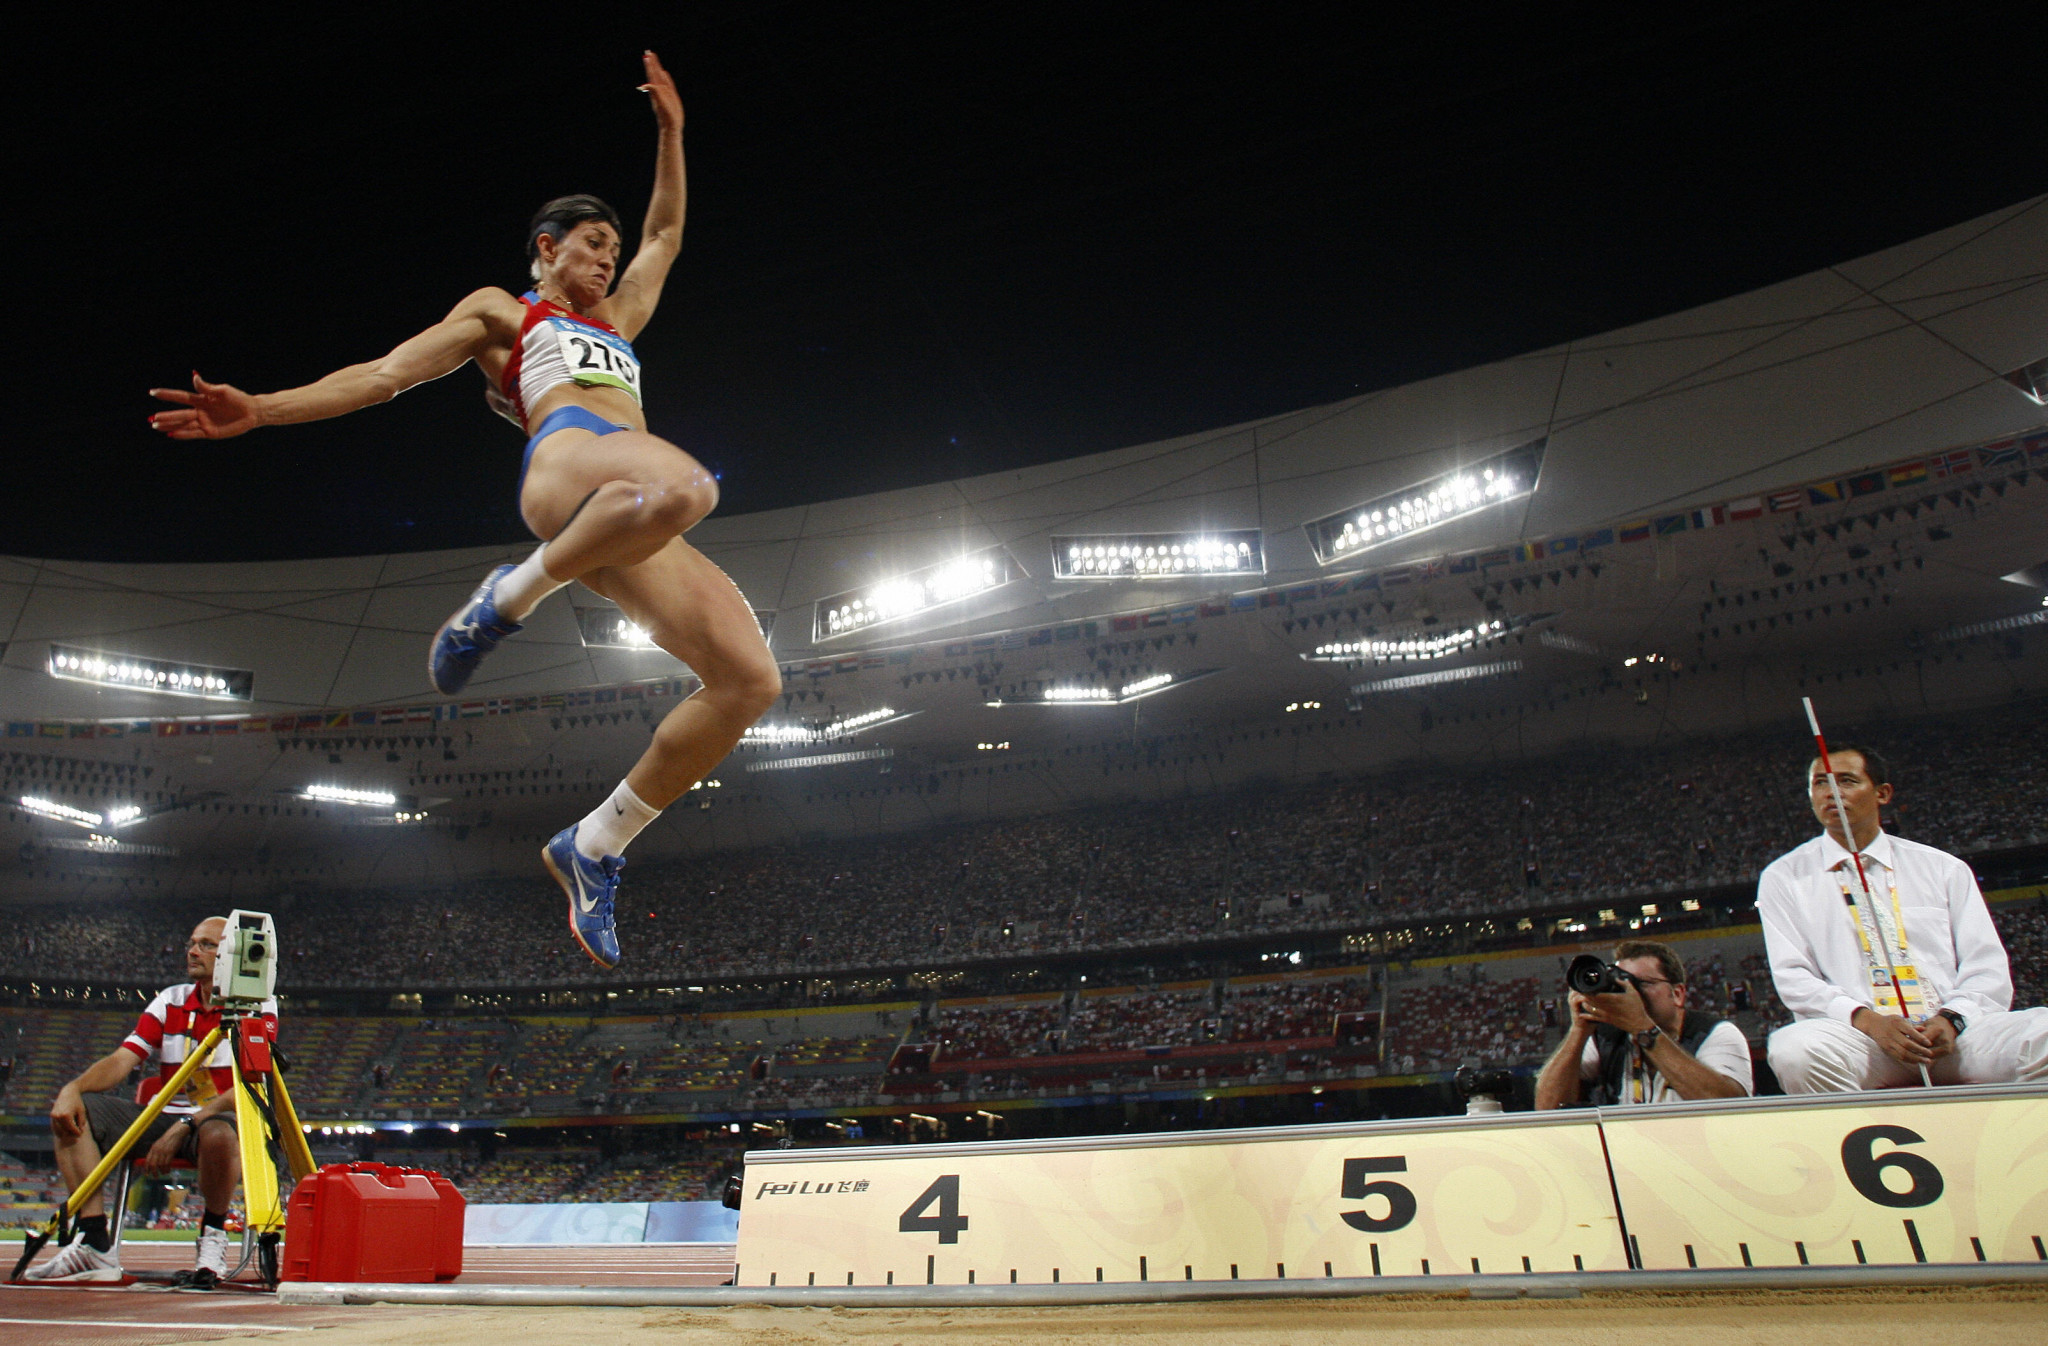 Tatyana Lebedeva will lose long jump and triple jump silver medals from Beijing 2008 ©Getty Images